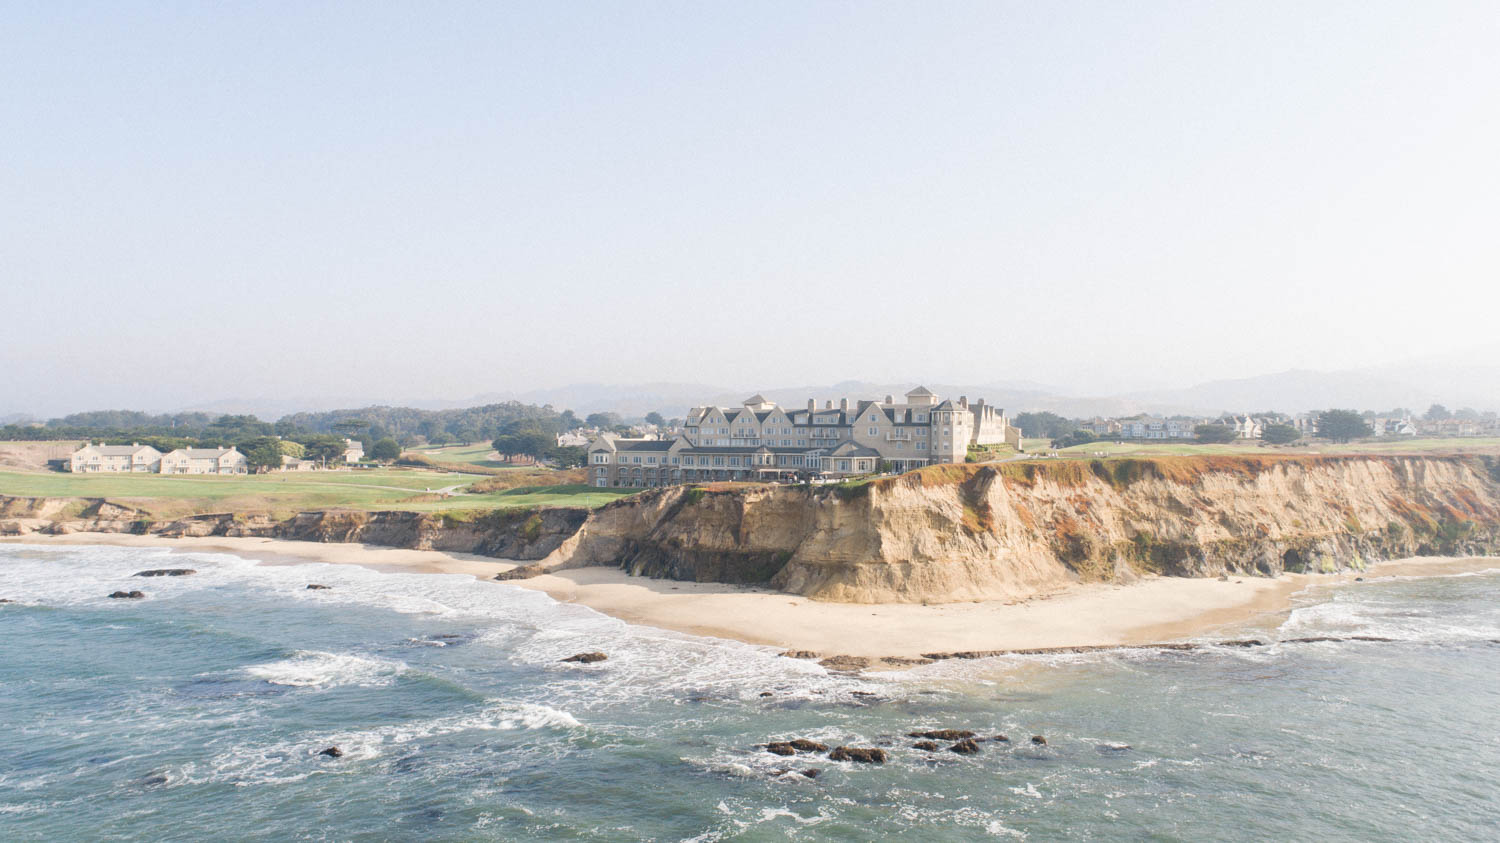 Drone photograph of Ritz Carlton Half Moon Bay